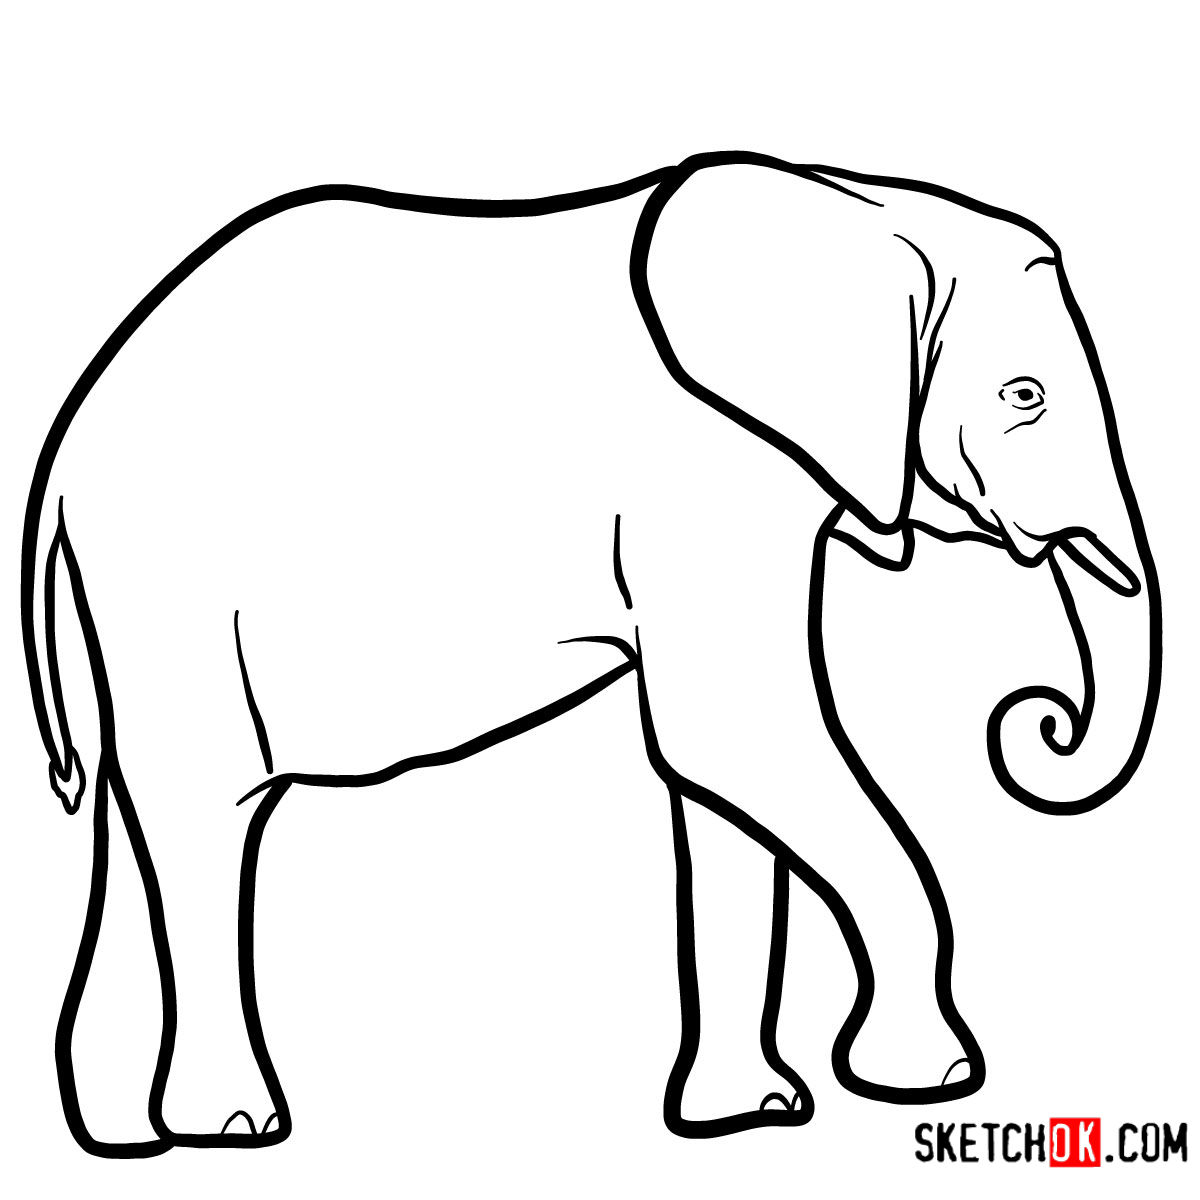 Elephant Drawing Images | Free download on ClipArtMag